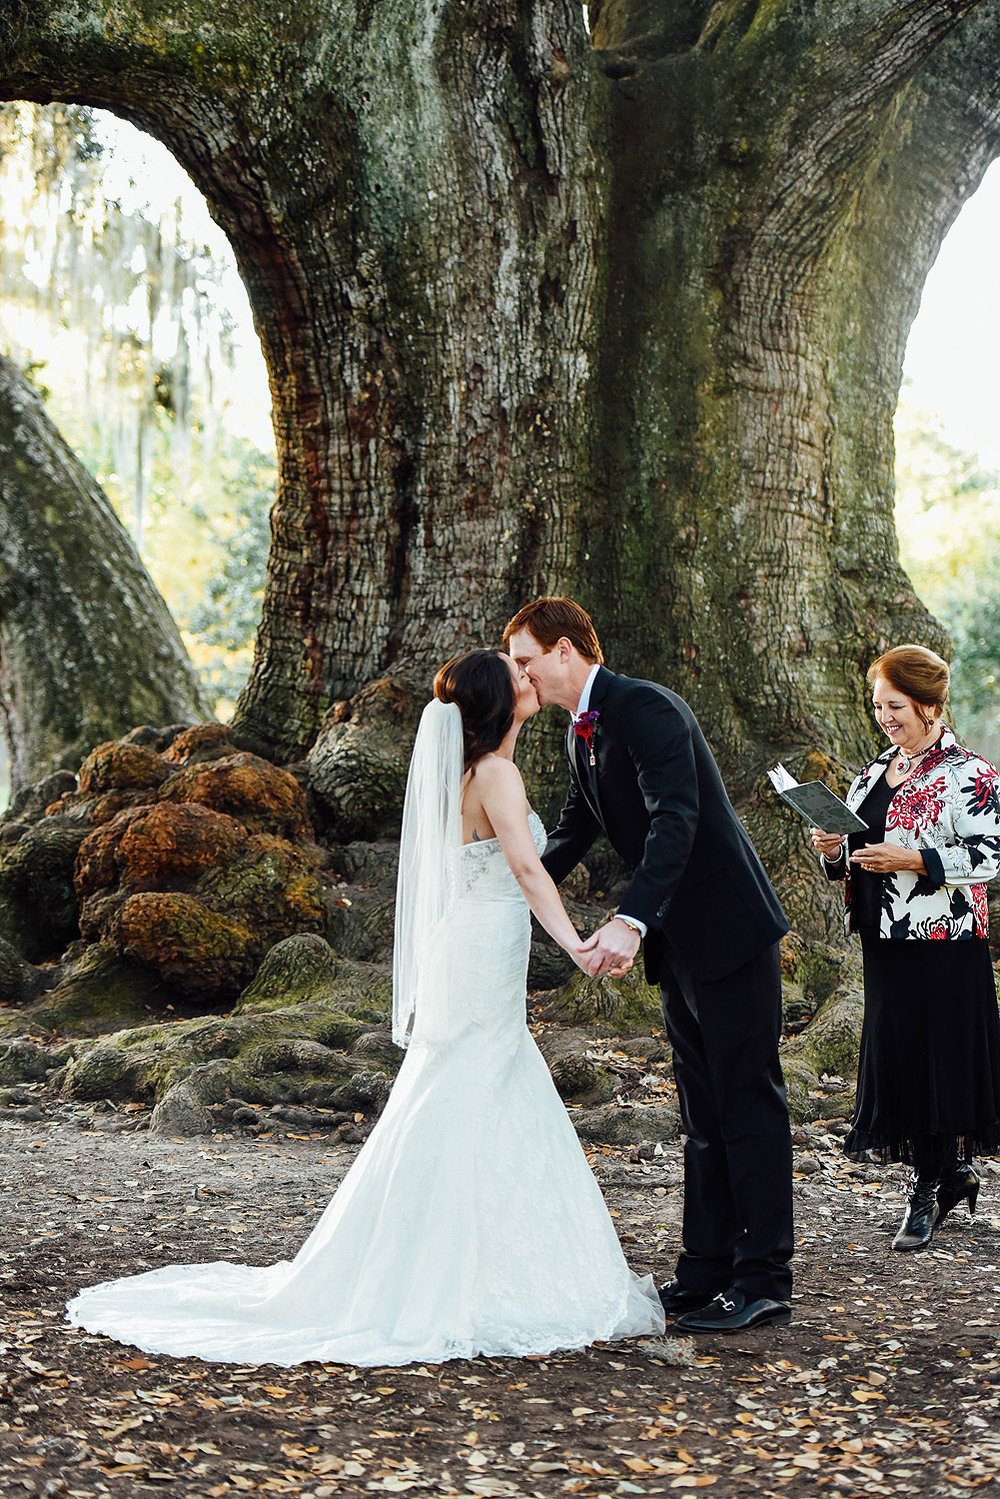 Lisa + Rock-Tree-of-Life-Audubon-Park-New-Orleans-Elopement-Photos_Online_0161.jpg